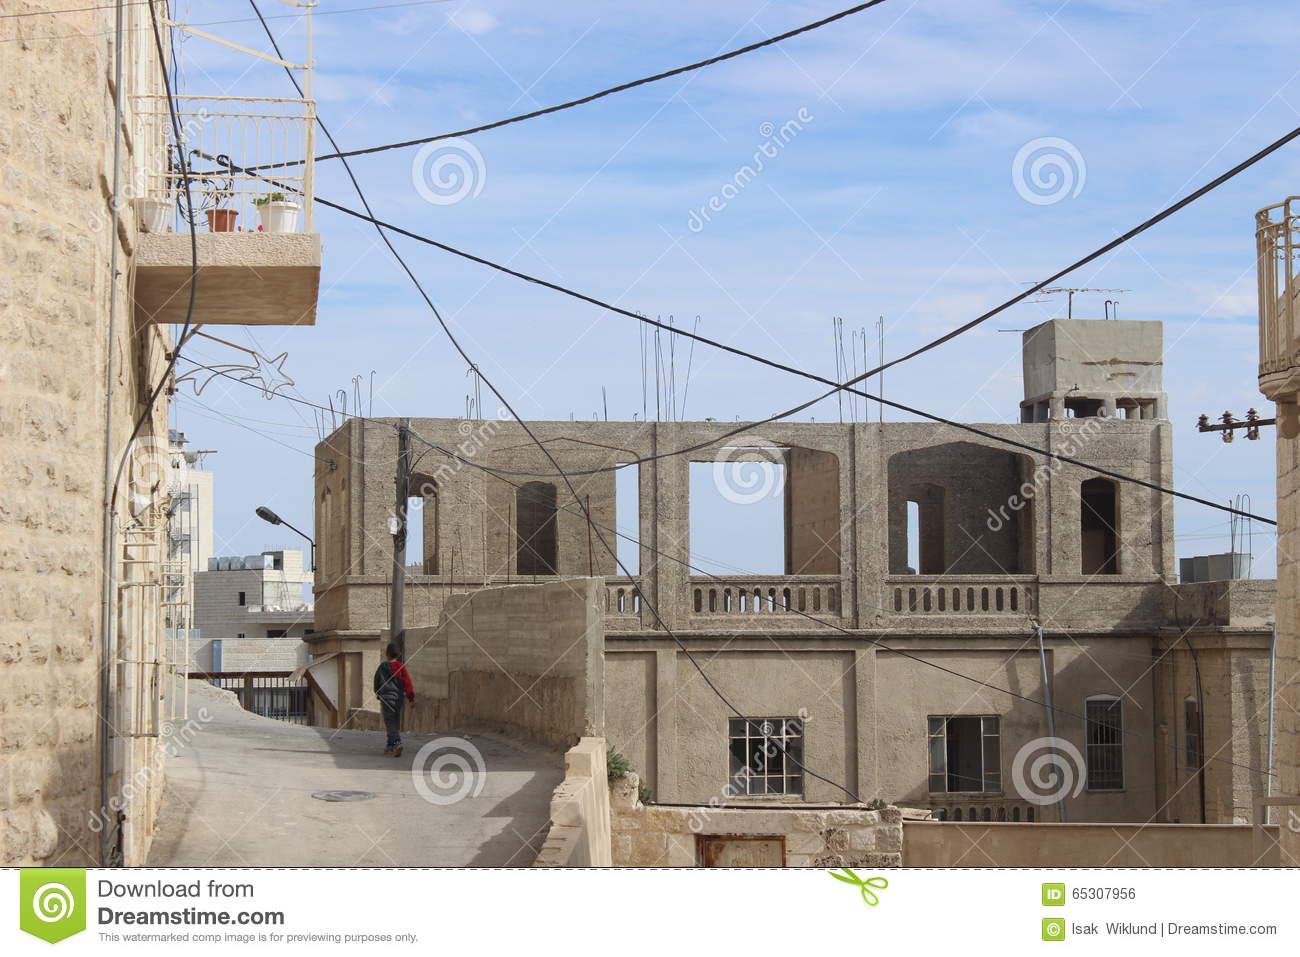 Fine Child Walking Past Buildings Under Construction In Bethlehem Wiring Digital Resources Timewpwclawcorpcom